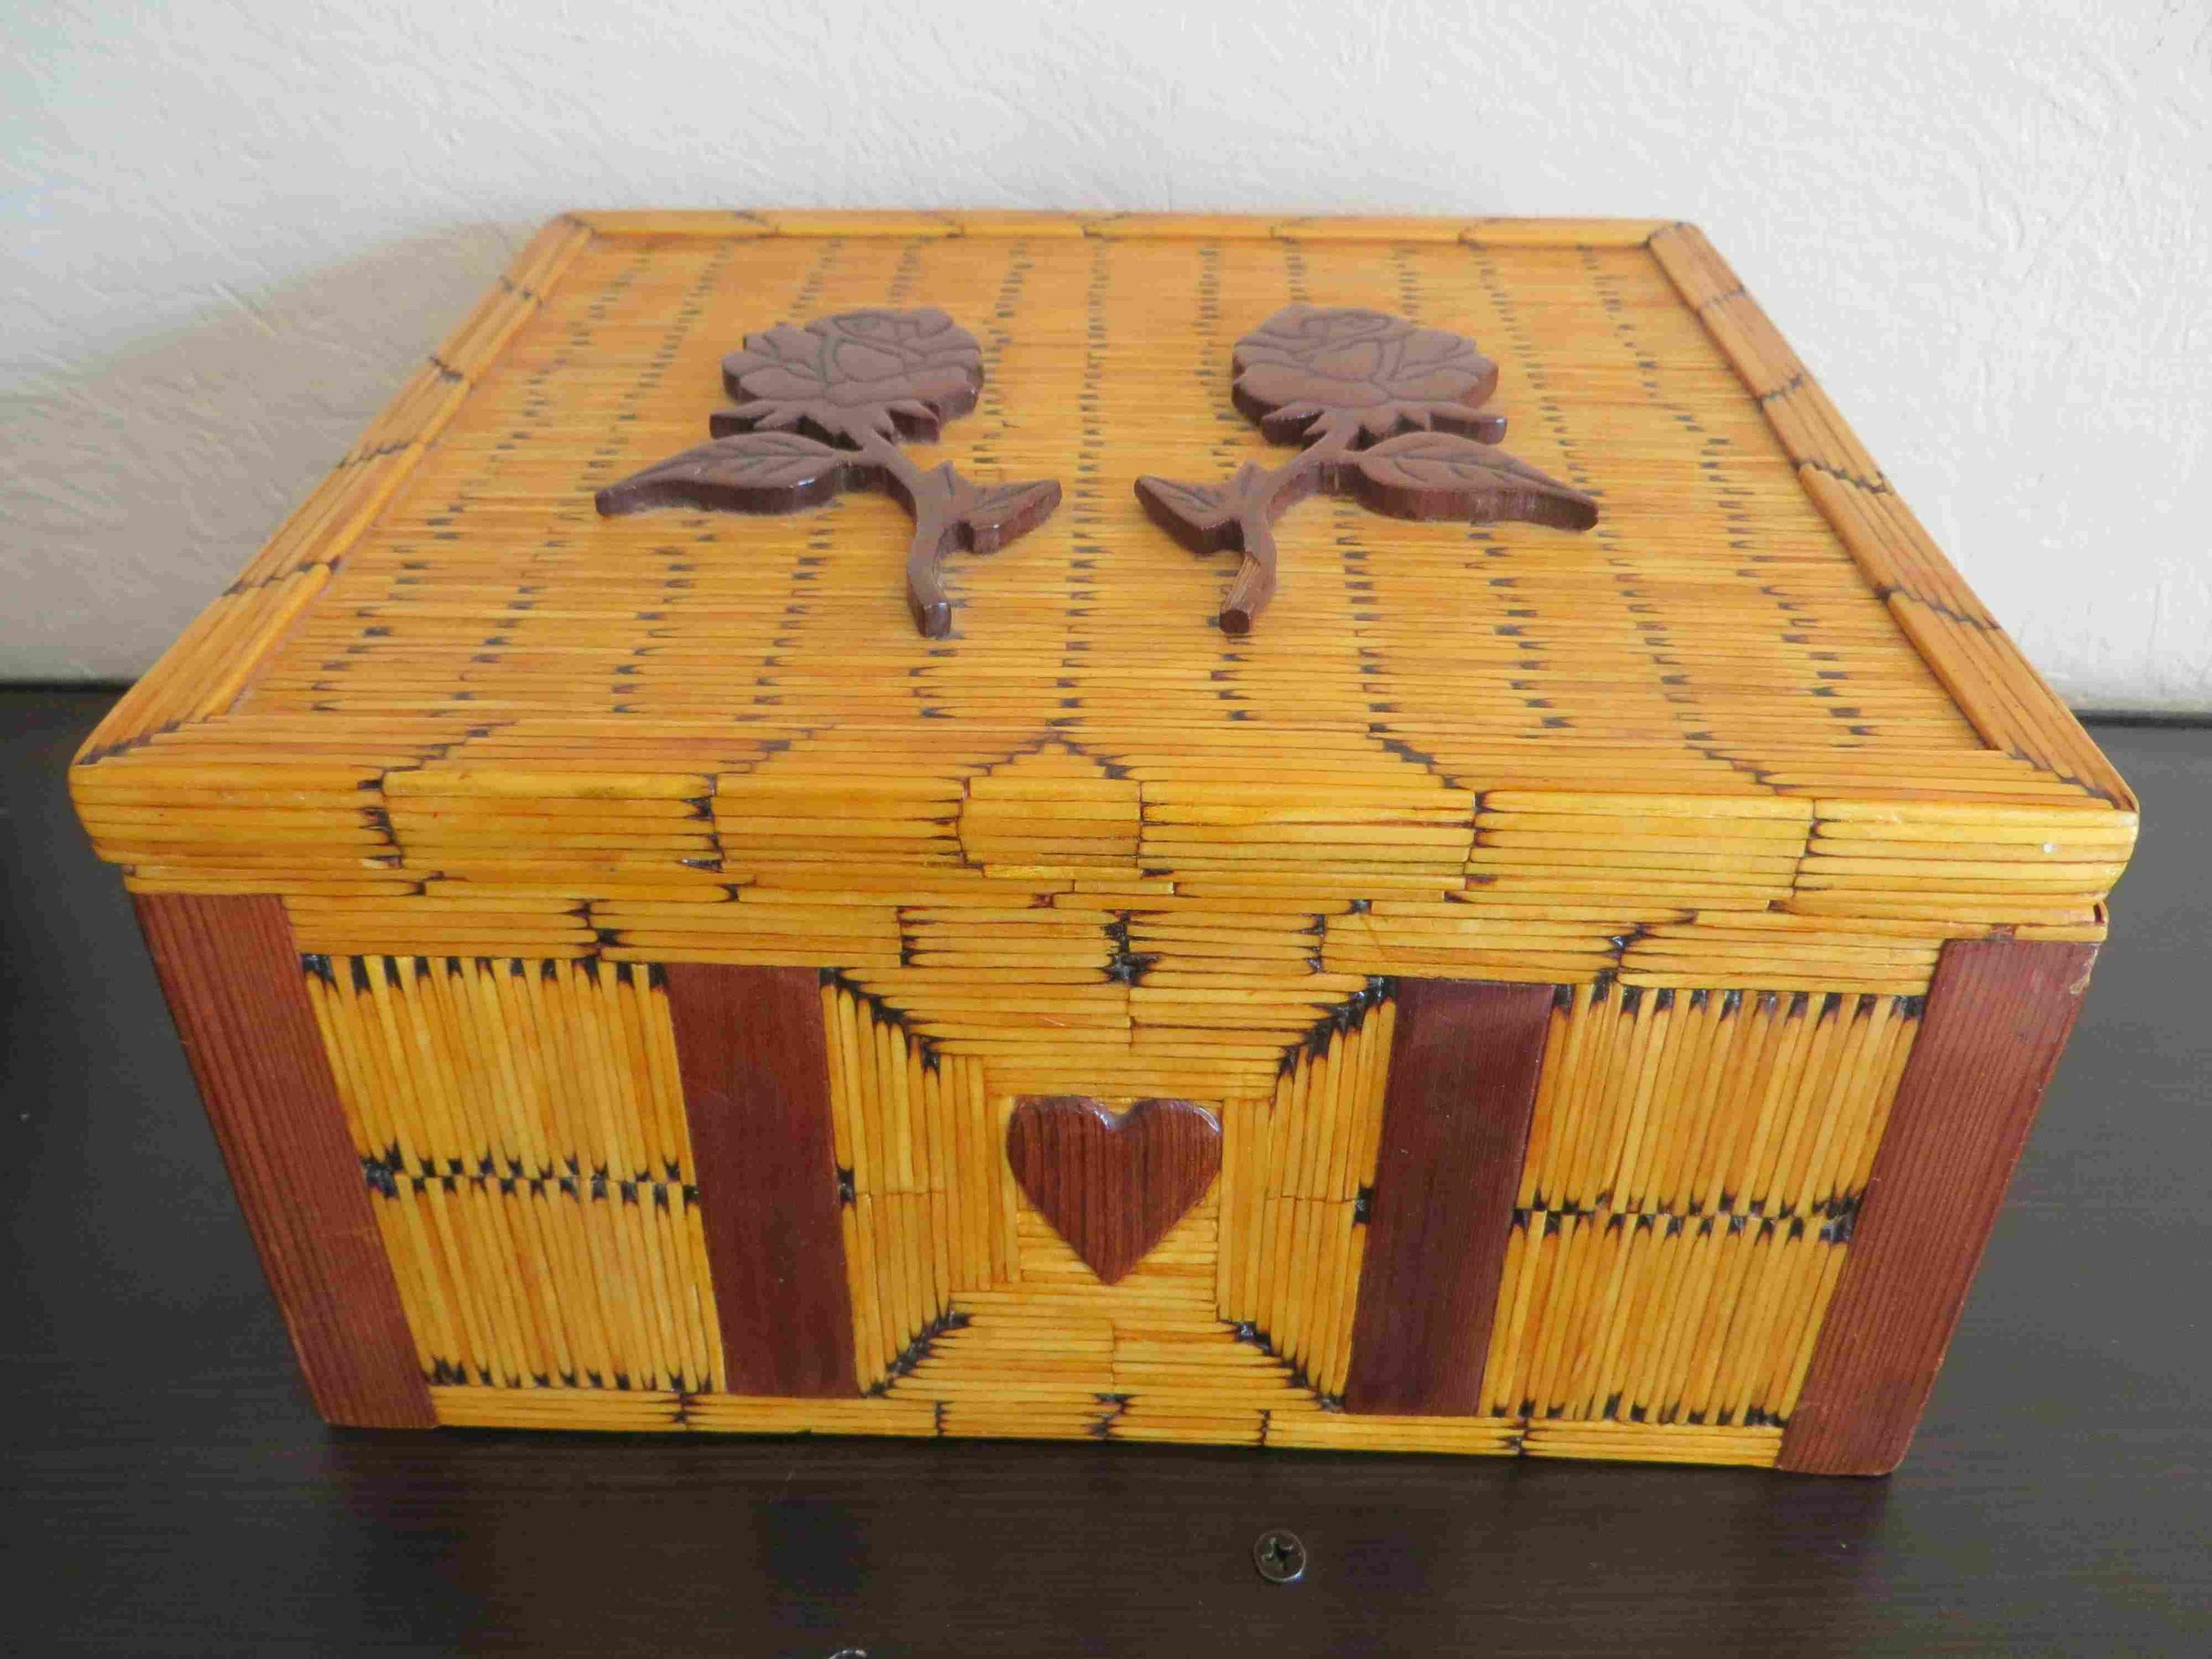 Vintage Inmate Matchstick Jewelry Box-005 - Copy.jpg